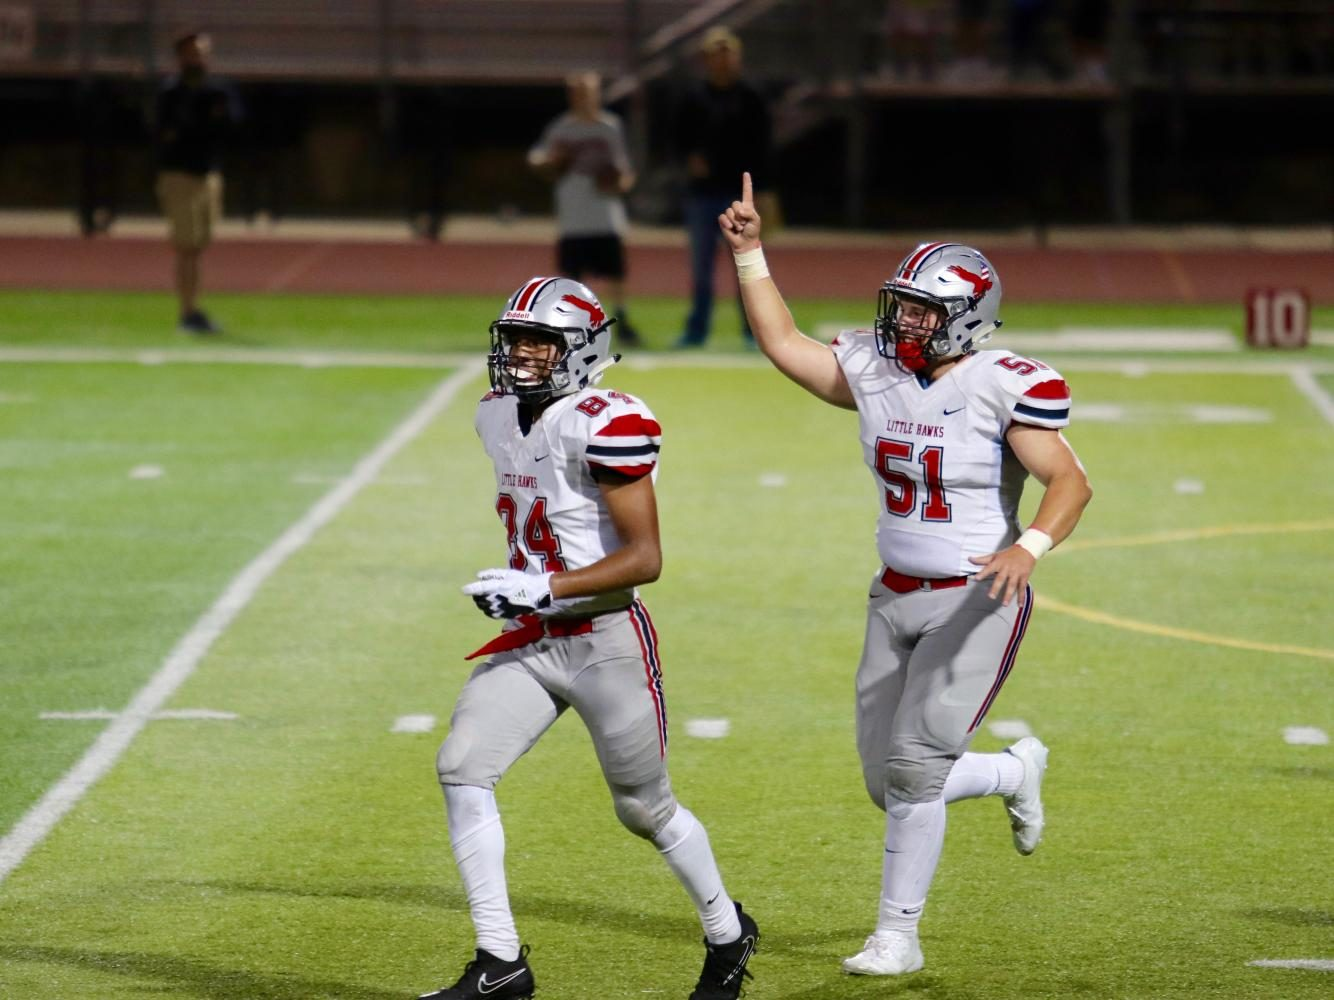 Teammates Liam McComas 19 (51) and Zach Jones 18 (84) celebrate after Jones second touchdown of the night.